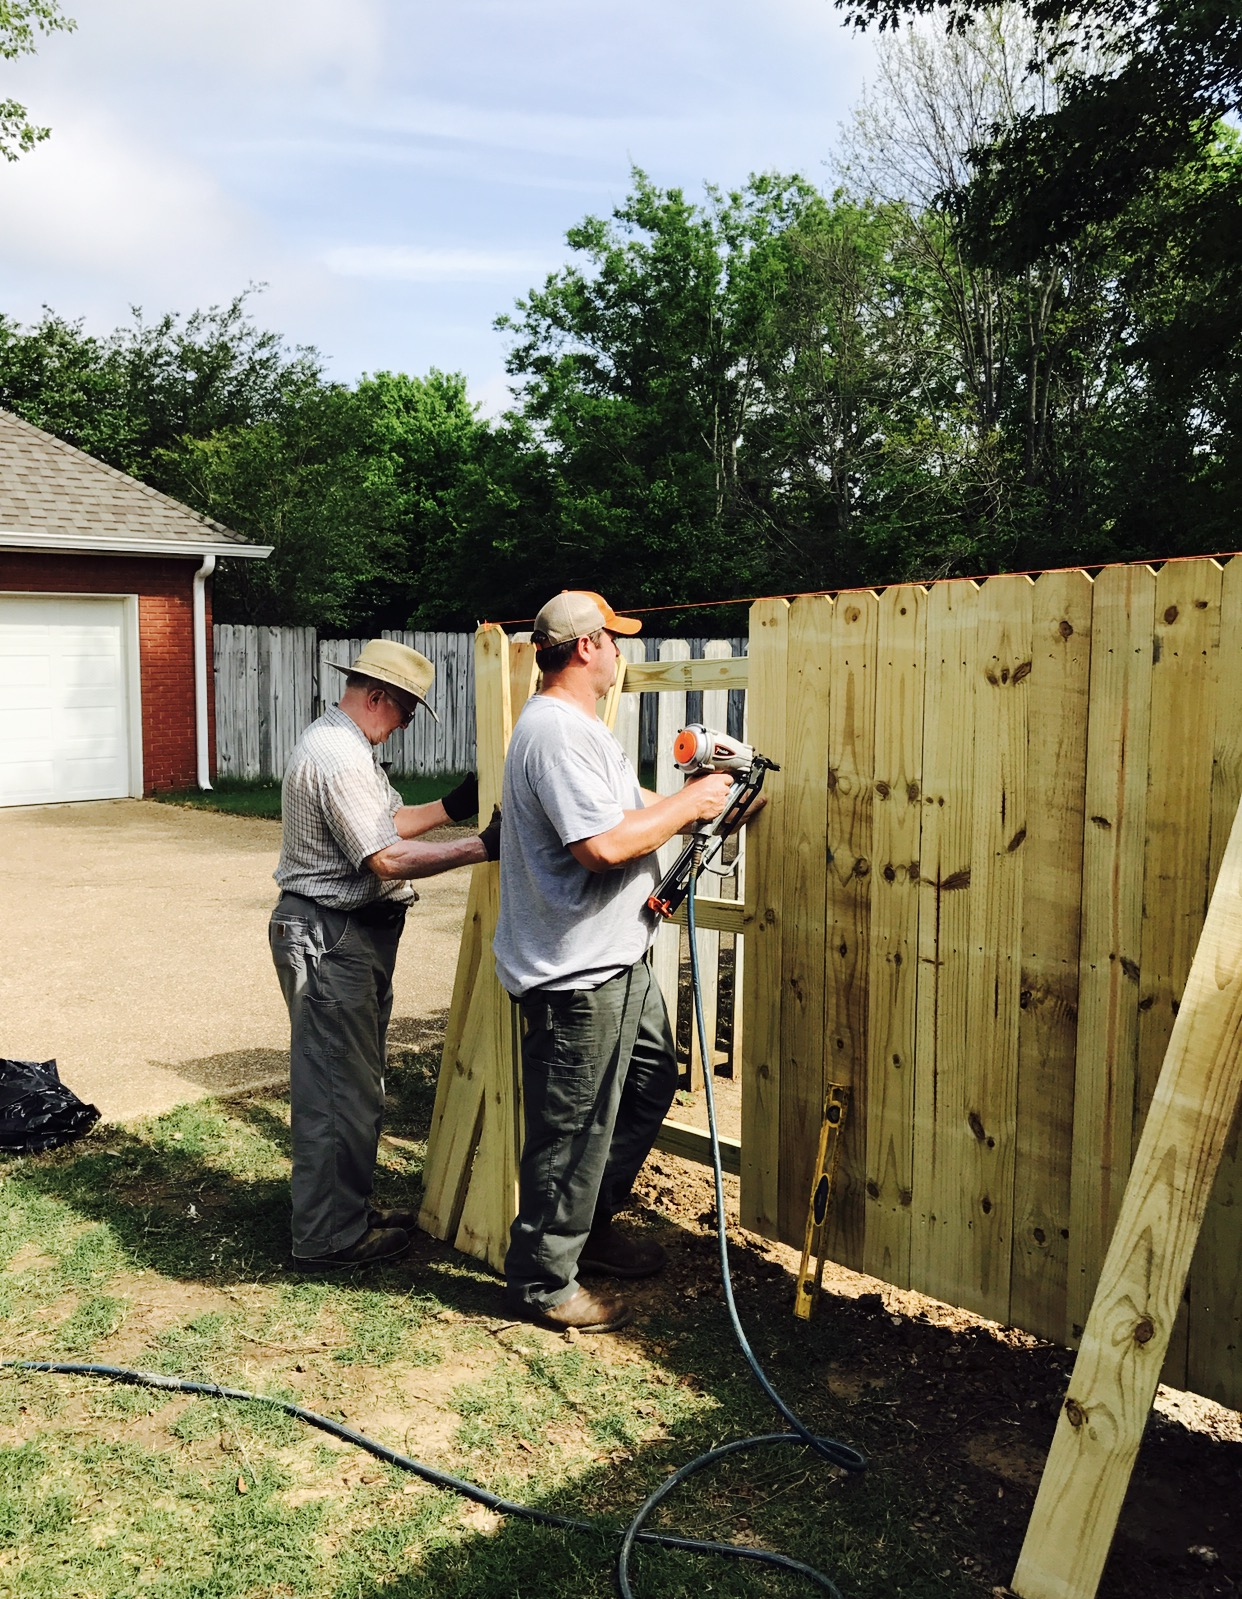 David and Allan Smith fixing the fence and cleaning up the yard.